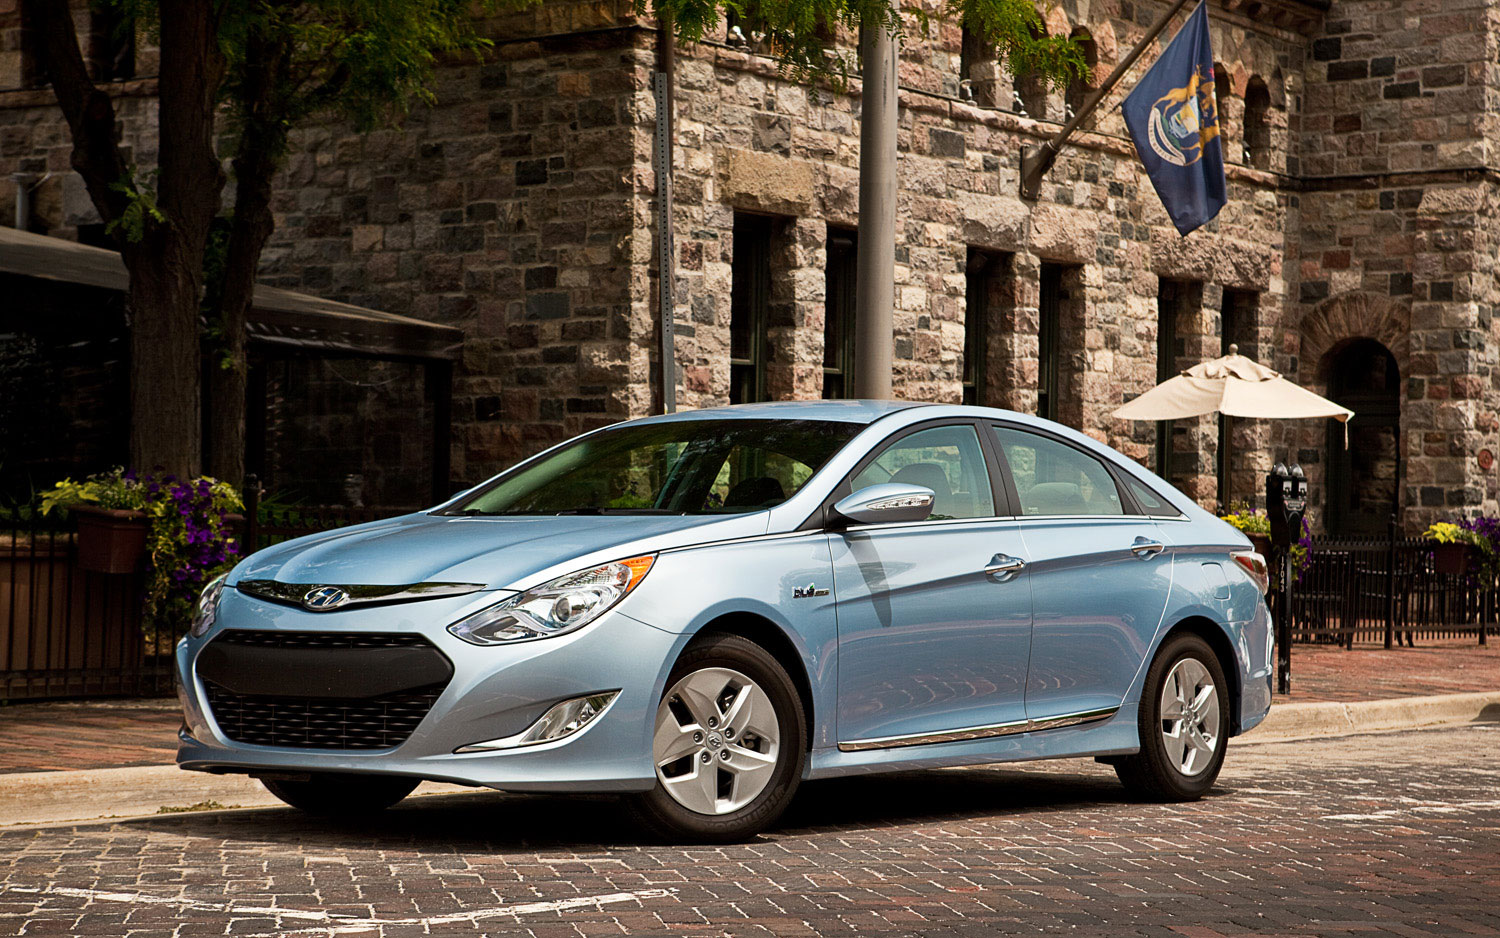 2011 Hyundai Sonata Hybrid Front Left Side View Parked2